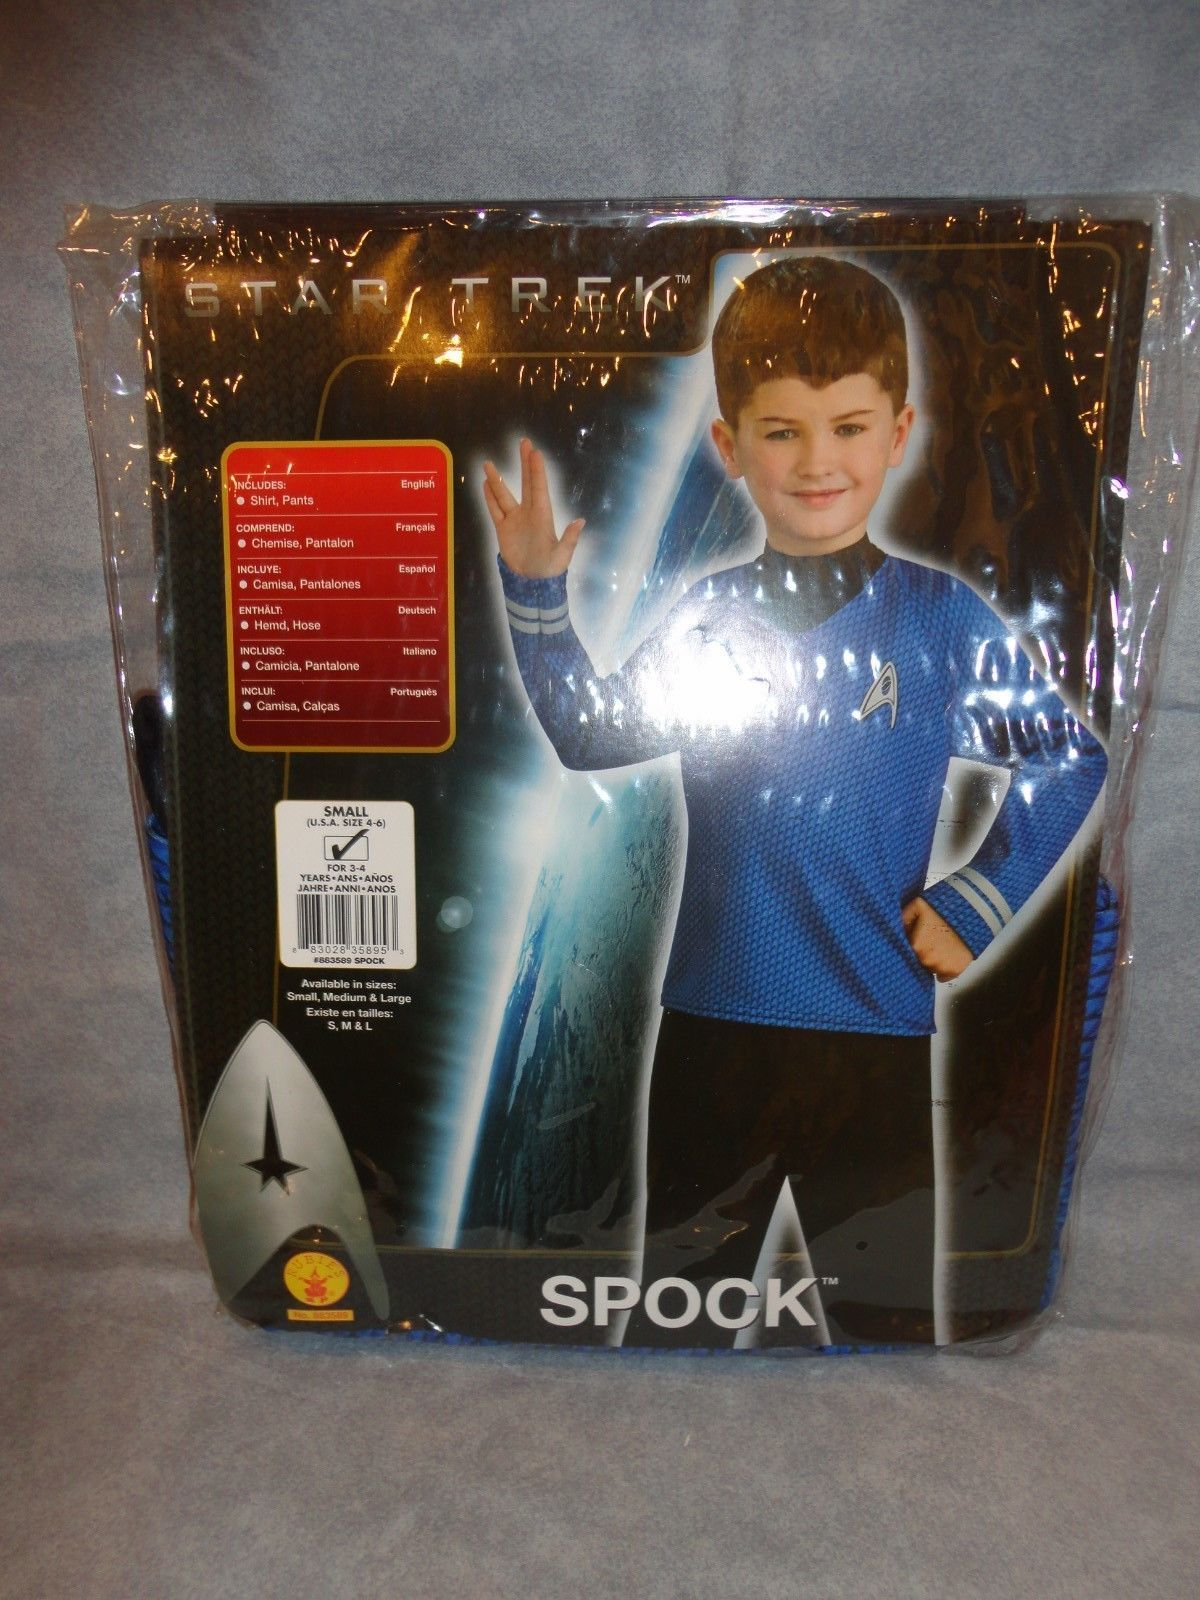 STAR TREK SPOCK COSTUME CHILD SIZE SMALL BY RUBIES SIZE 4-6